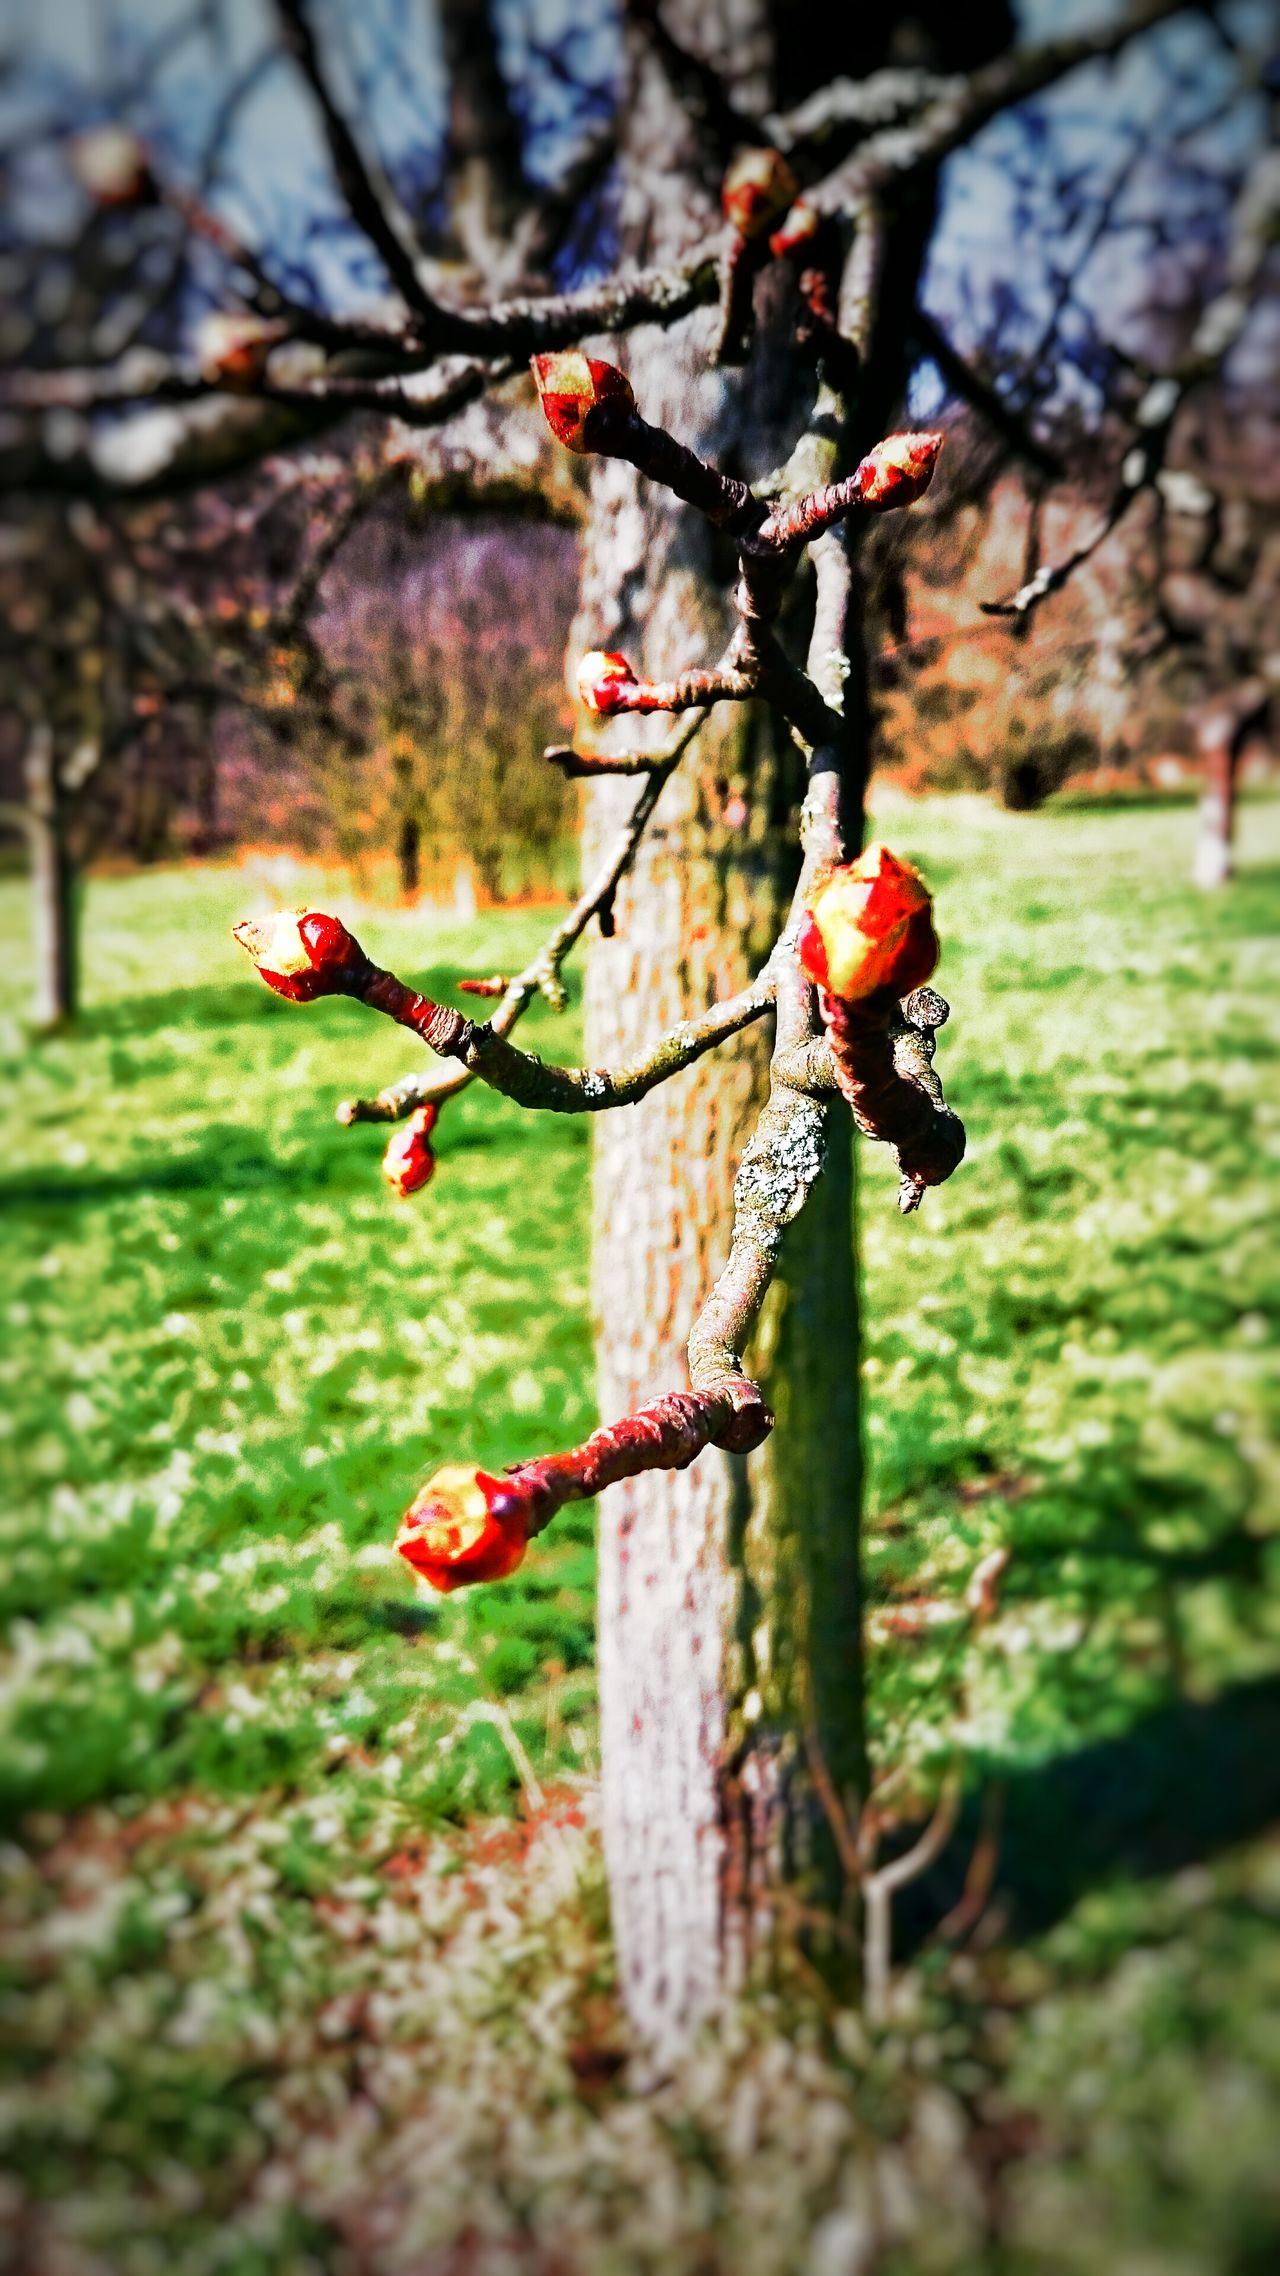 EyeEm Best Shots - Nature EyeEm Nature Lover Enjoying Life Knospen Knospe Spring Springtime Frühling Wood Holz Holzstamm Holz Kunst WoodArt Wood Art Hanging Out Relaxing Baum Baum 🌳🌲 Baum Ohne Laub Baumblütenfest Baum & Zeit Hello World Taking Photos Check This Out